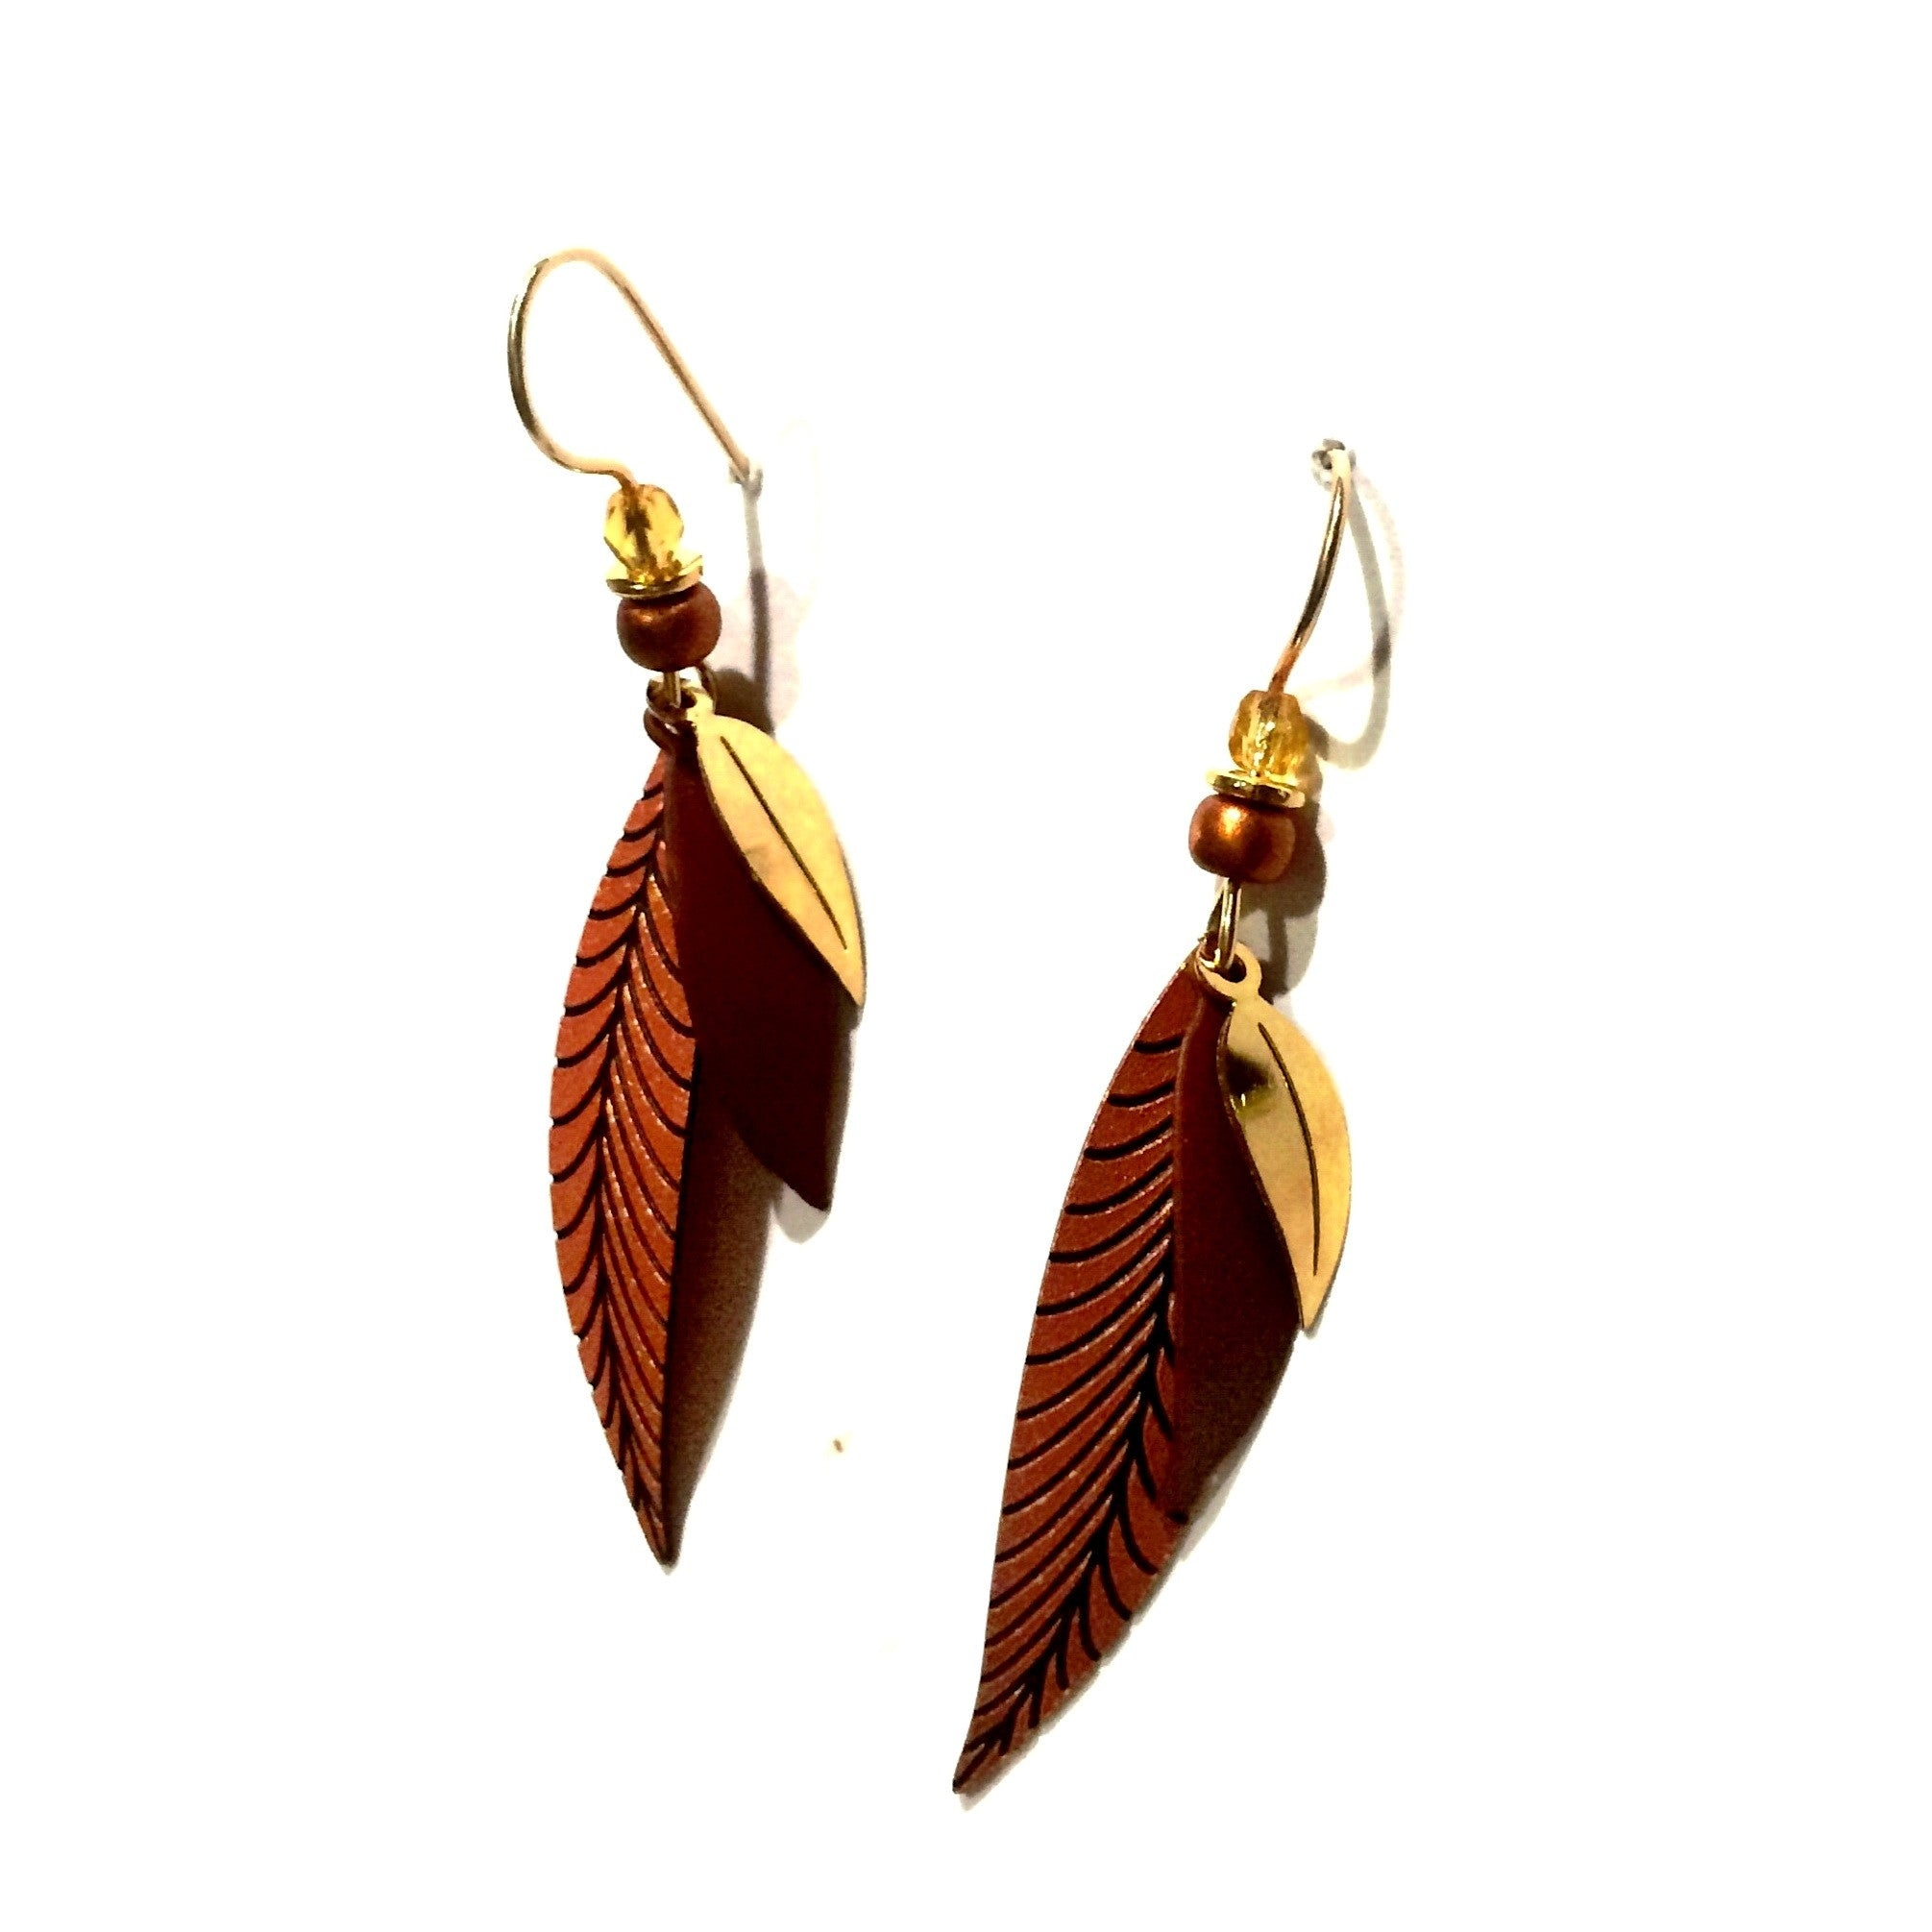 Gold-Filled Copper Leaves Earrings, $20 | Light Years Jewelry